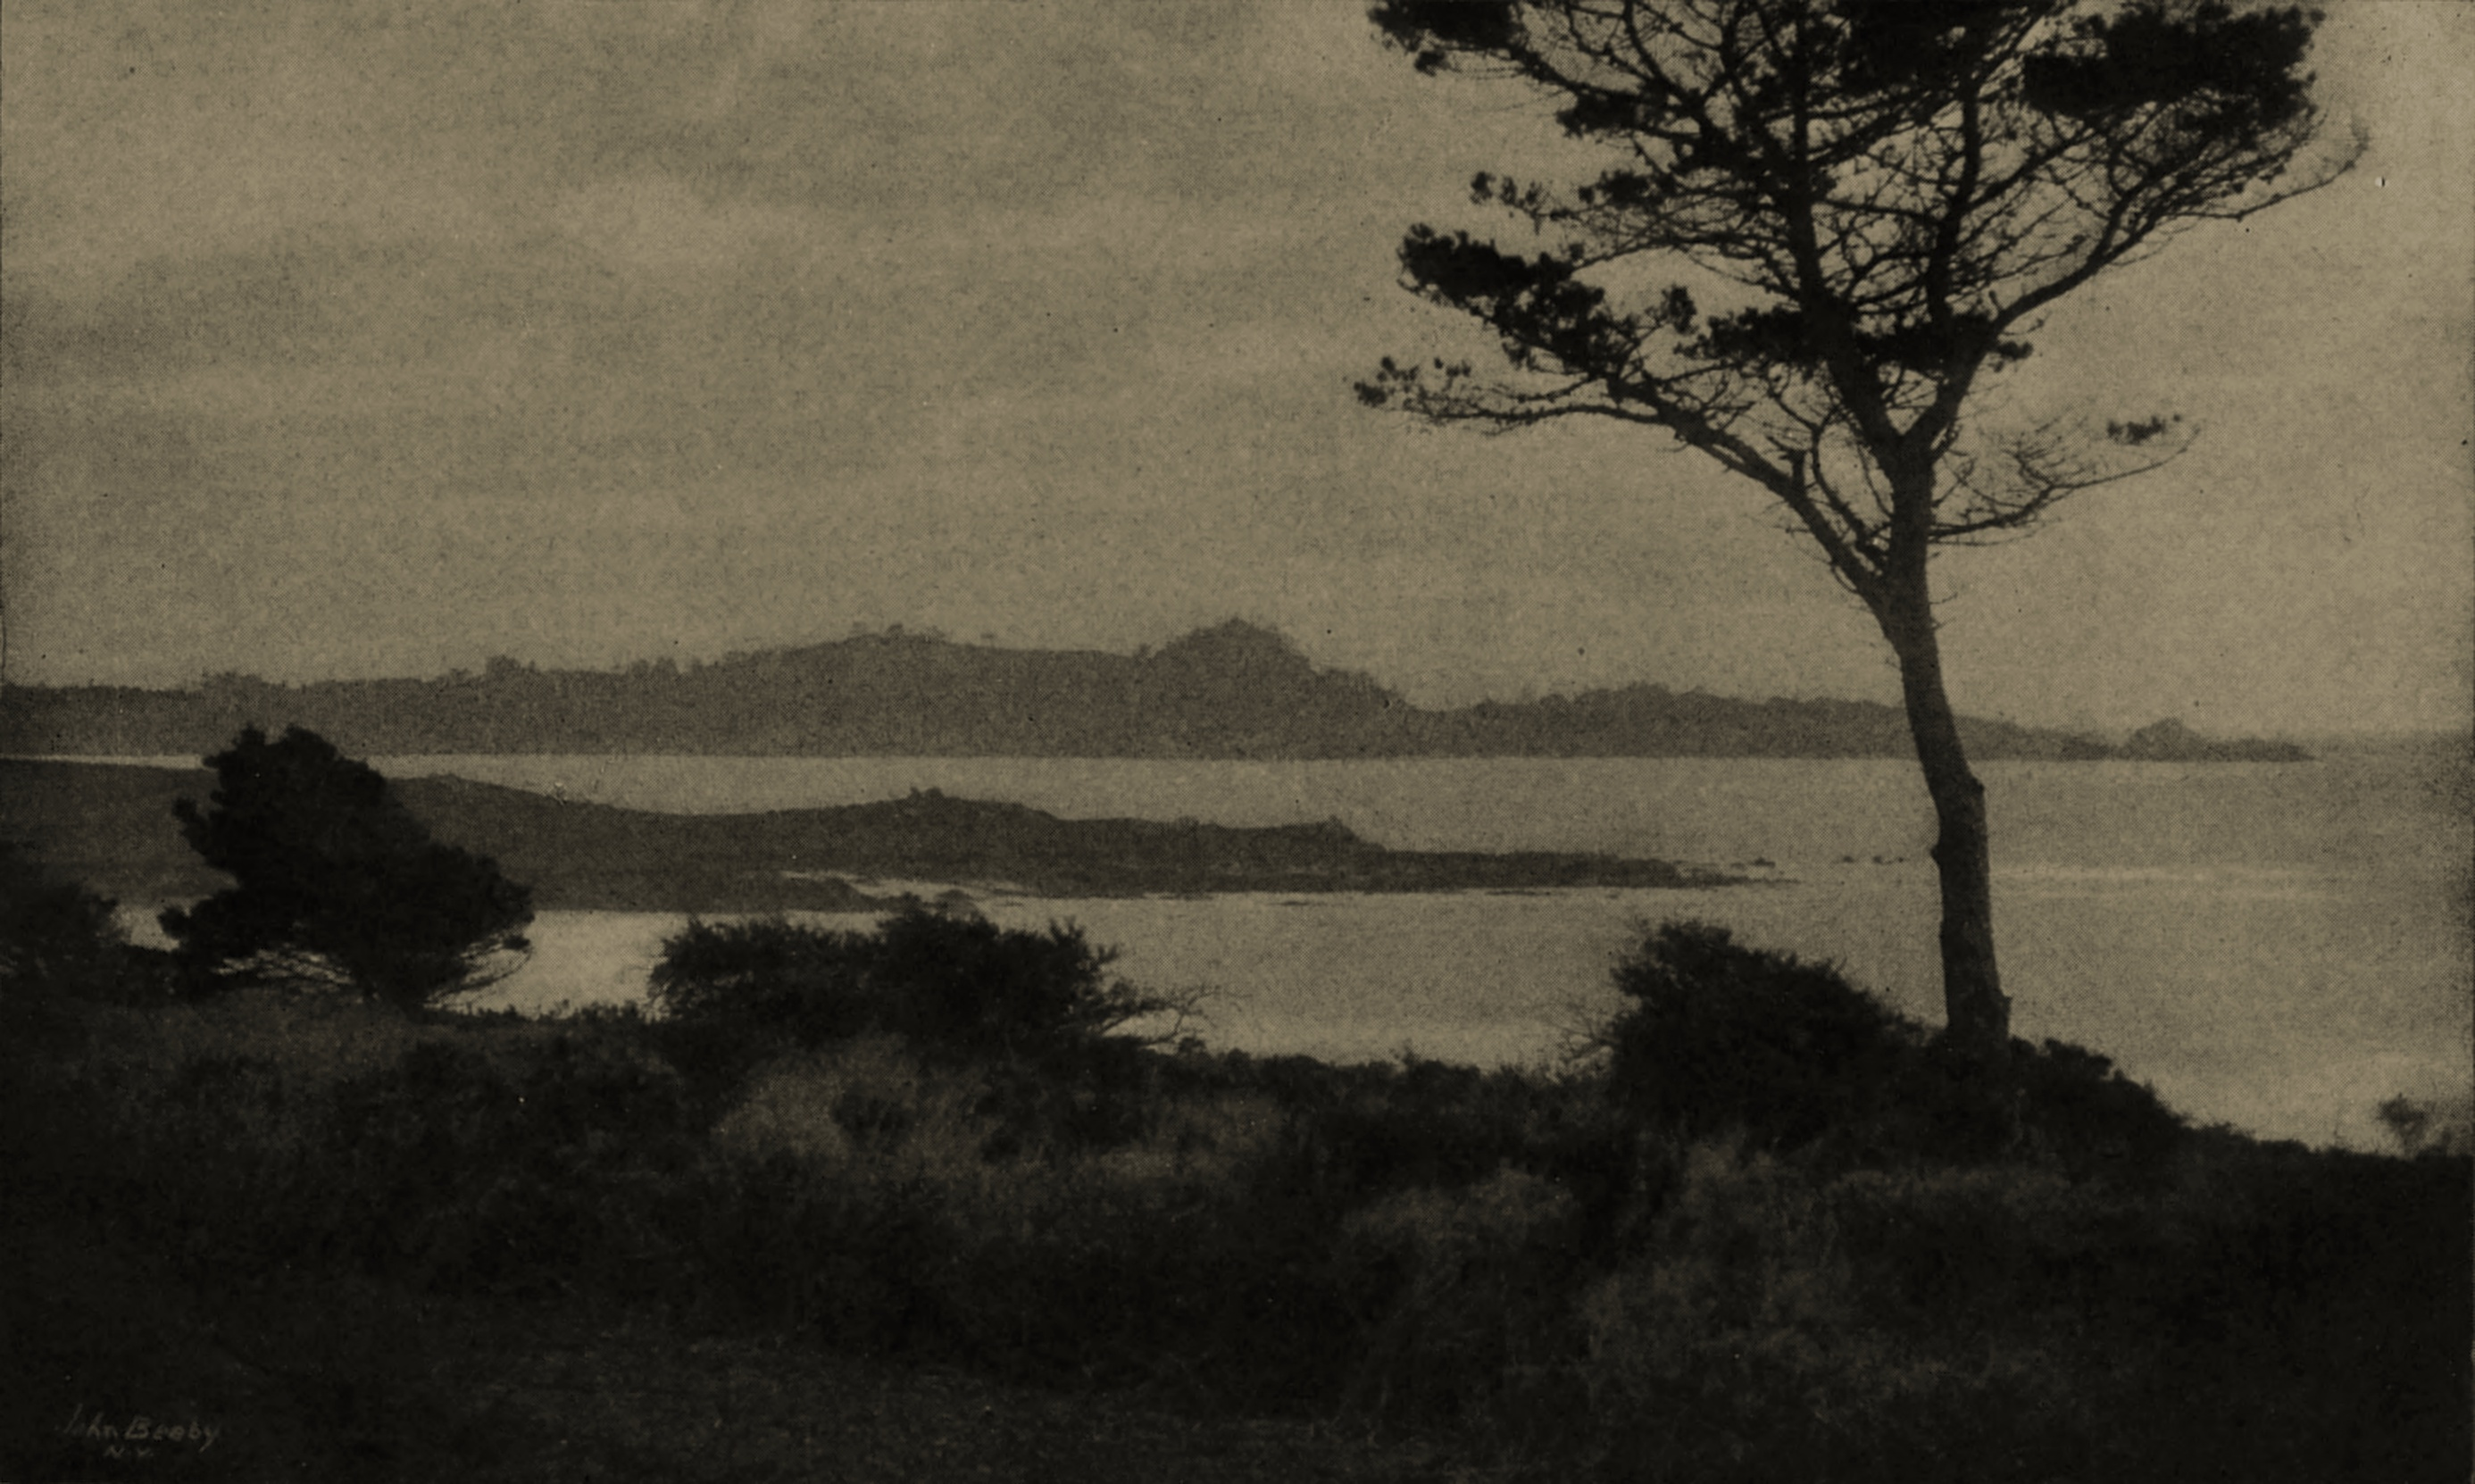 Landscape by John Beeby about 1908